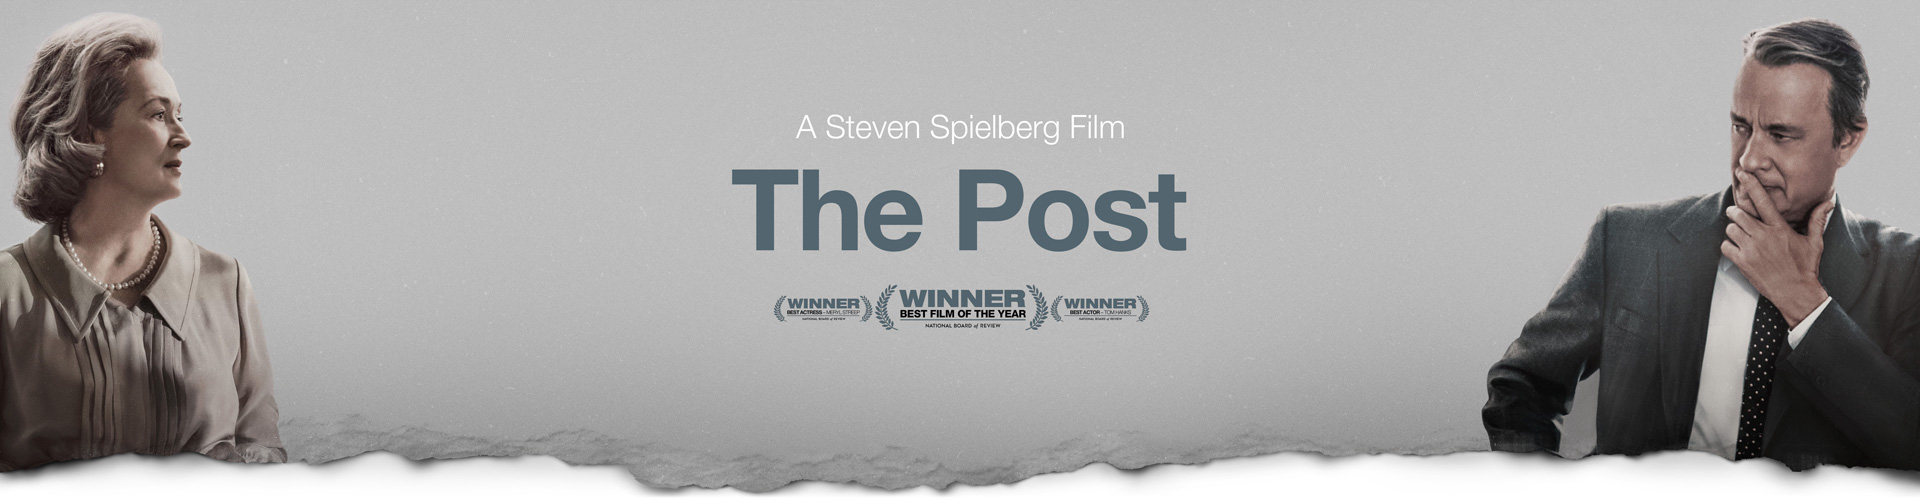 Dvd-it_slider_ThePost